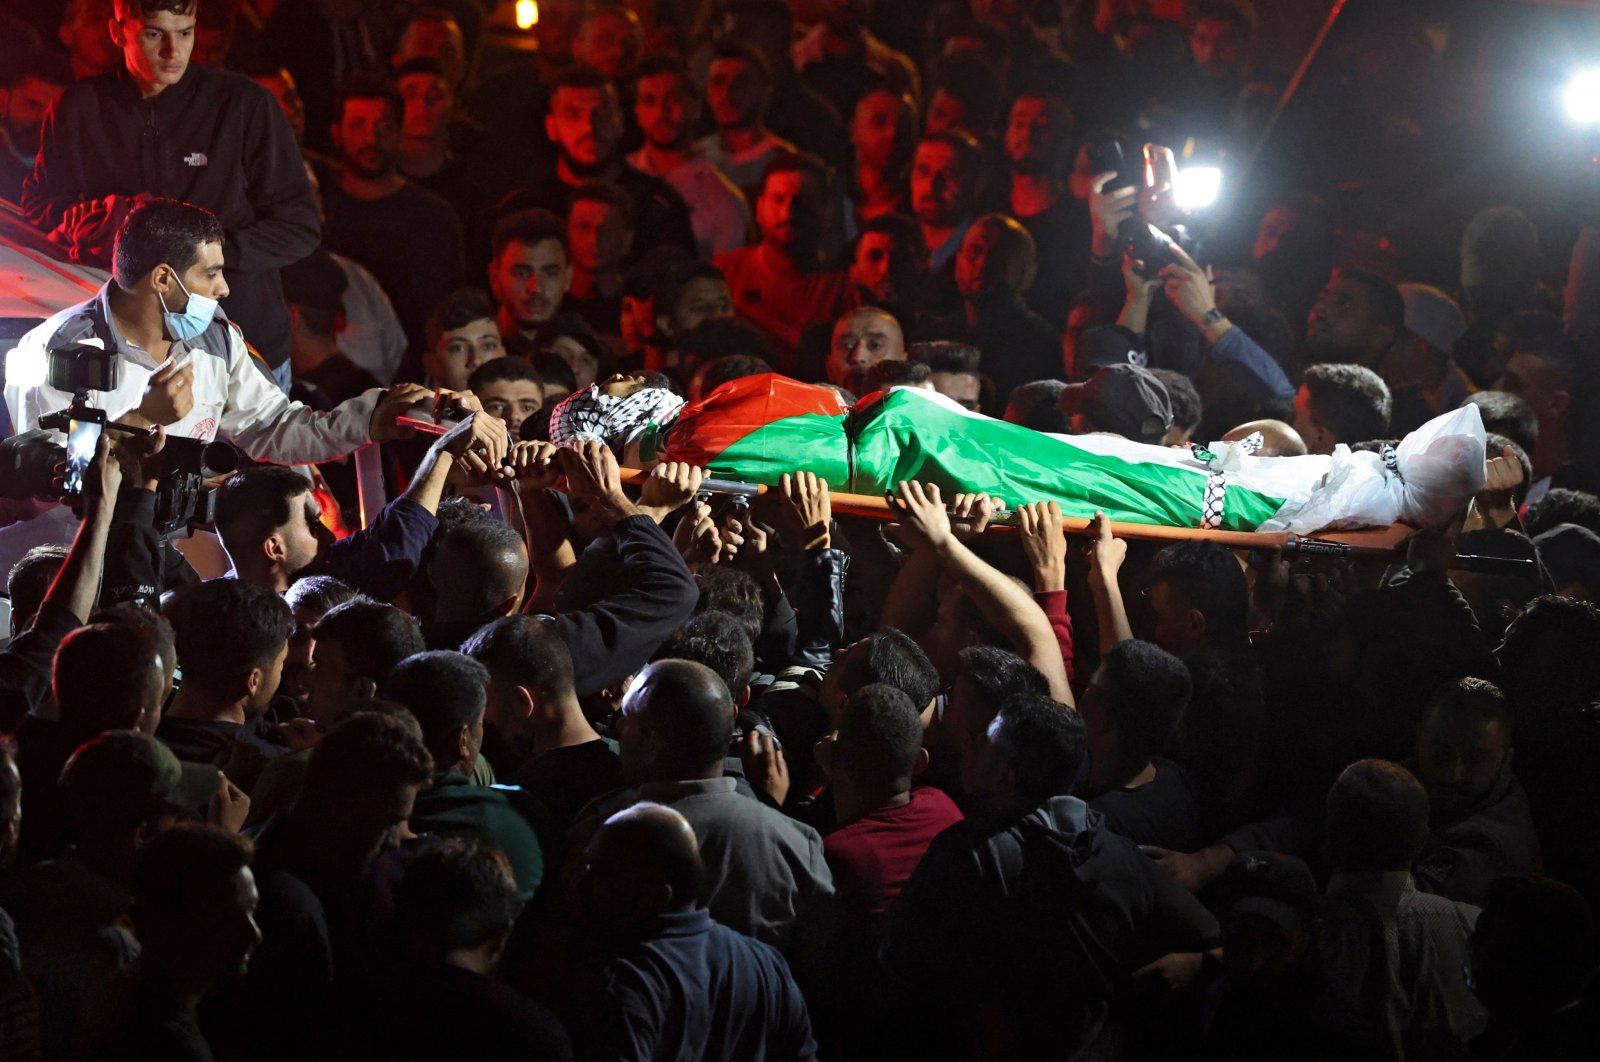 Mourners carry the body of Mohammed Khabisa, a Palestinian who was shot dead by Israeli troops, during his funeral in the village of Beita, the occupied West Bank, Palestine, Sept. 24, 2021. (AFP Photo)